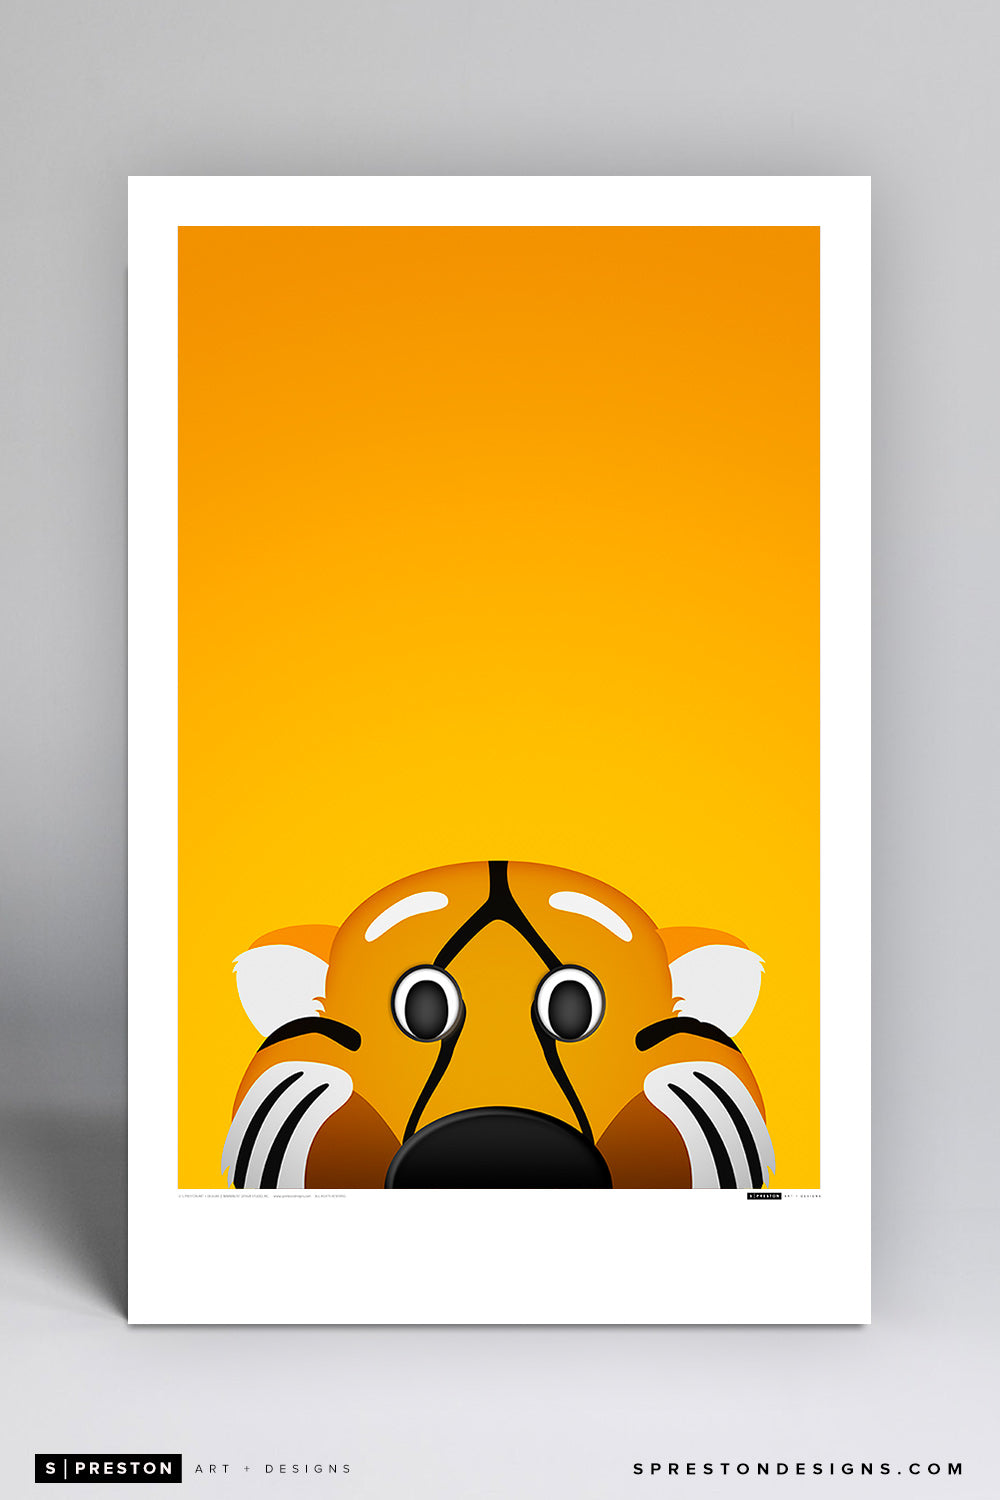 Minimalist Truman the Tiger - Mizzou Poster Print - University of Missouri - S. Preston Art + Designs